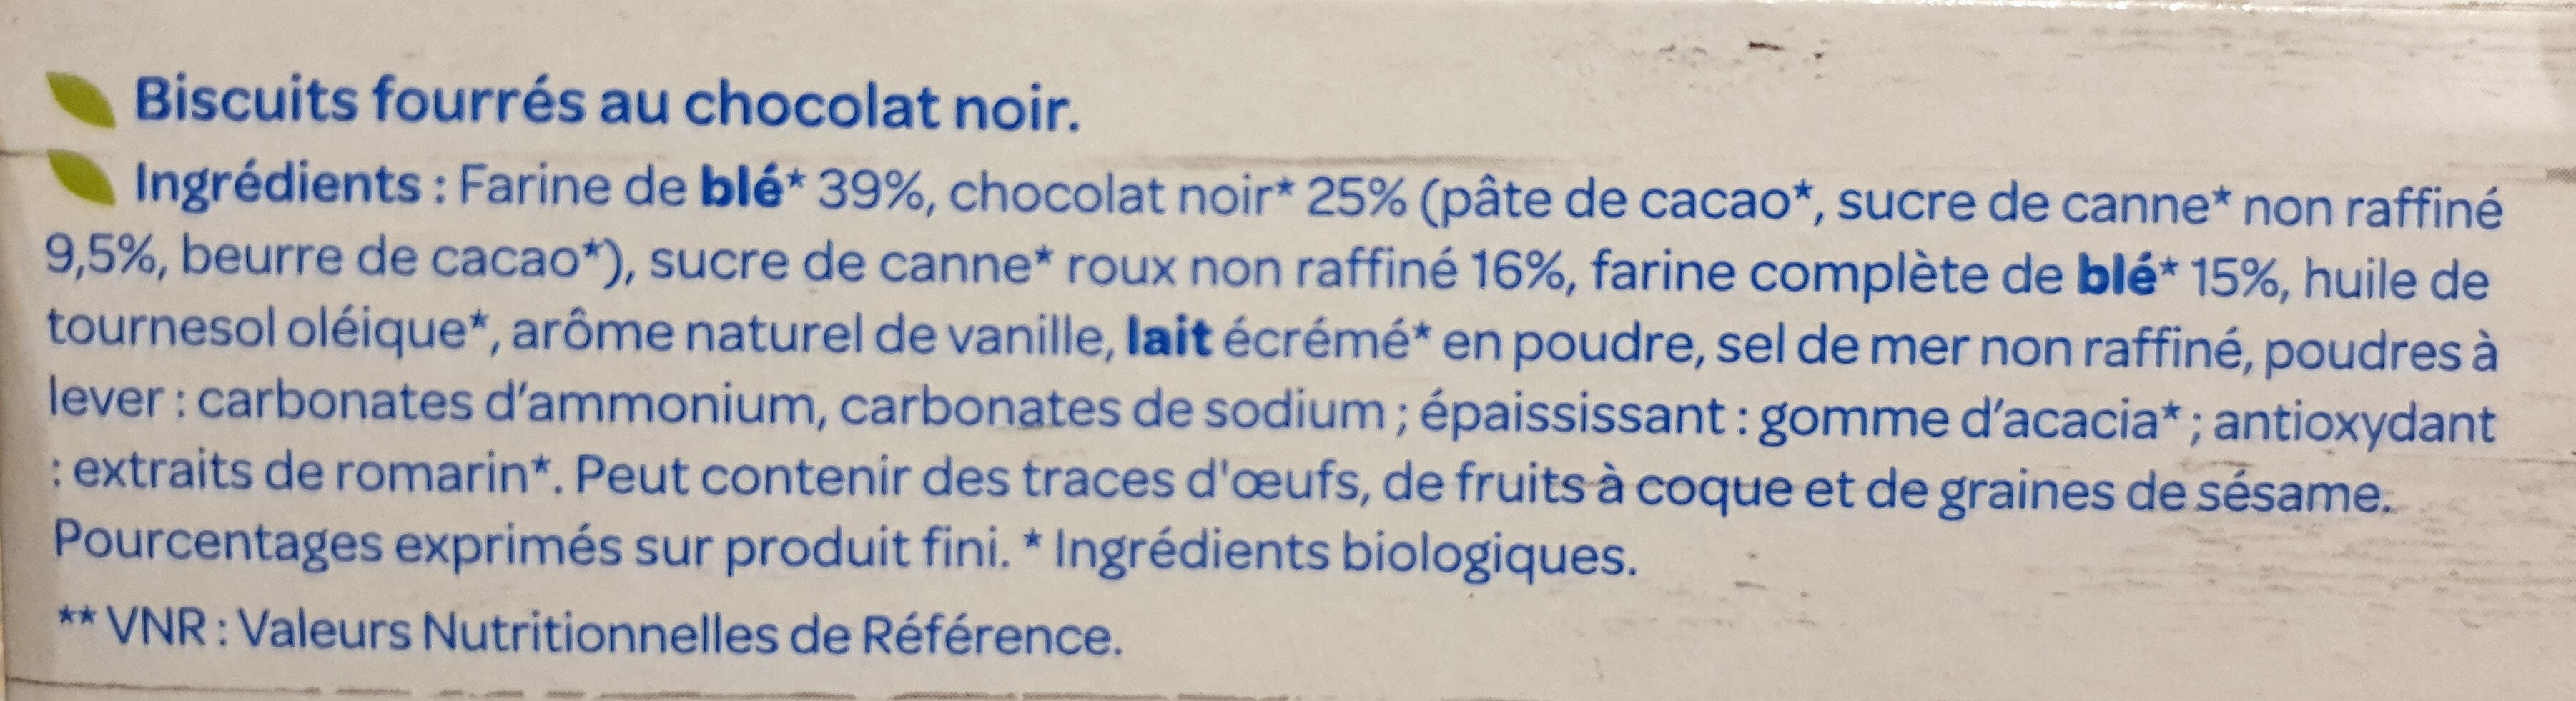 Fourrés Chocolat noir - Ingredients - fr